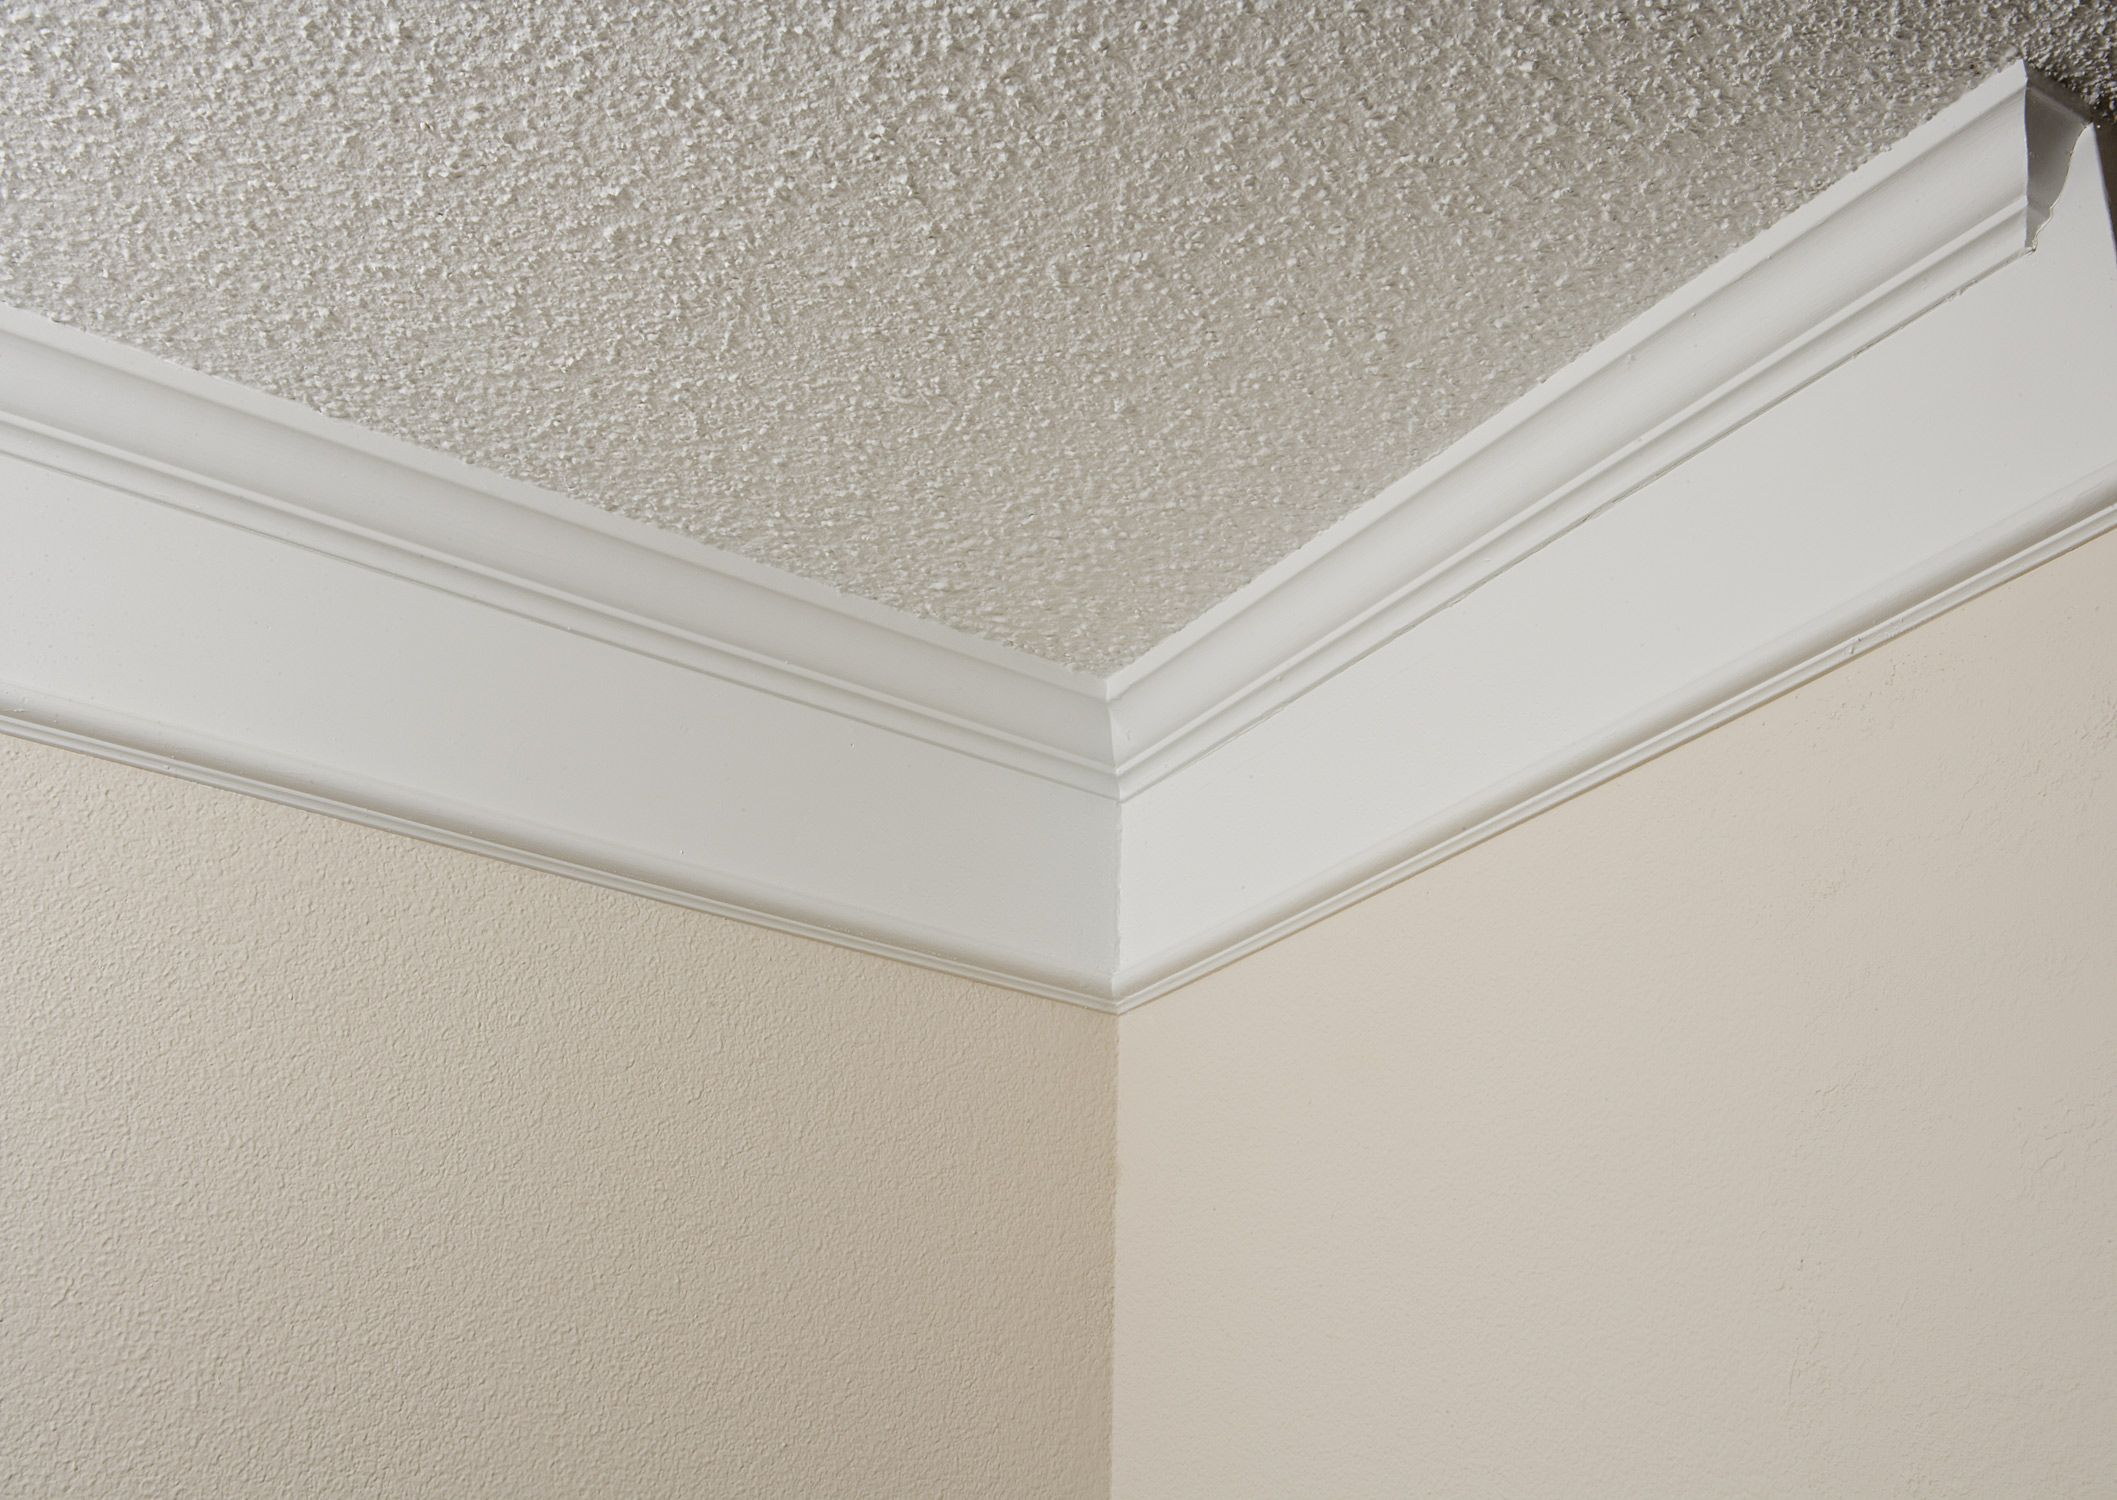 image detail for crown molding skyline country club. Black Bedroom Furniture Sets. Home Design Ideas